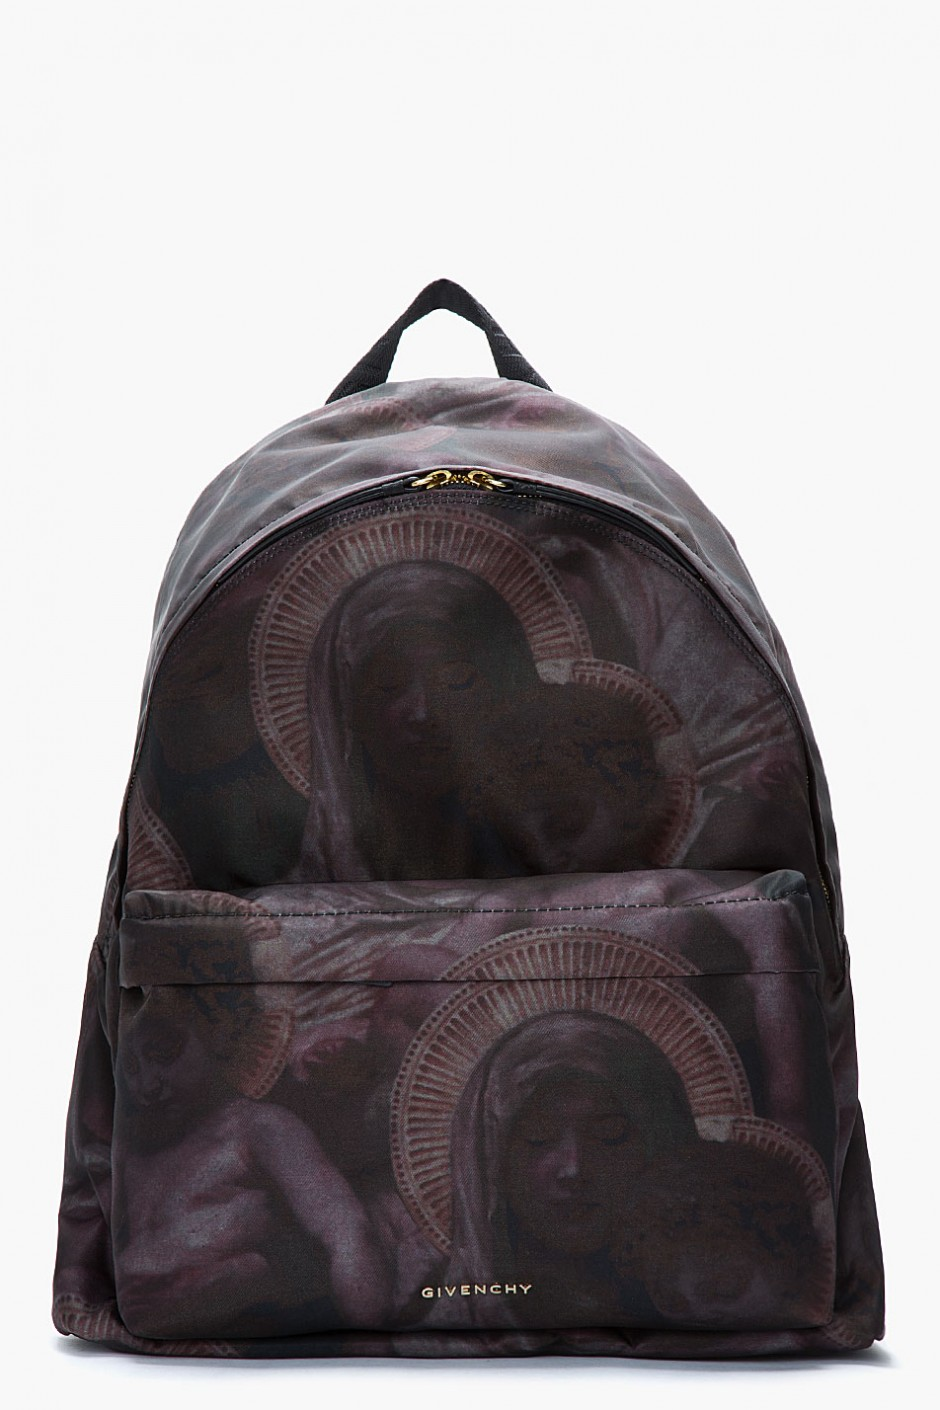 ssense, givenchy deep purple madonna, givenchy bags